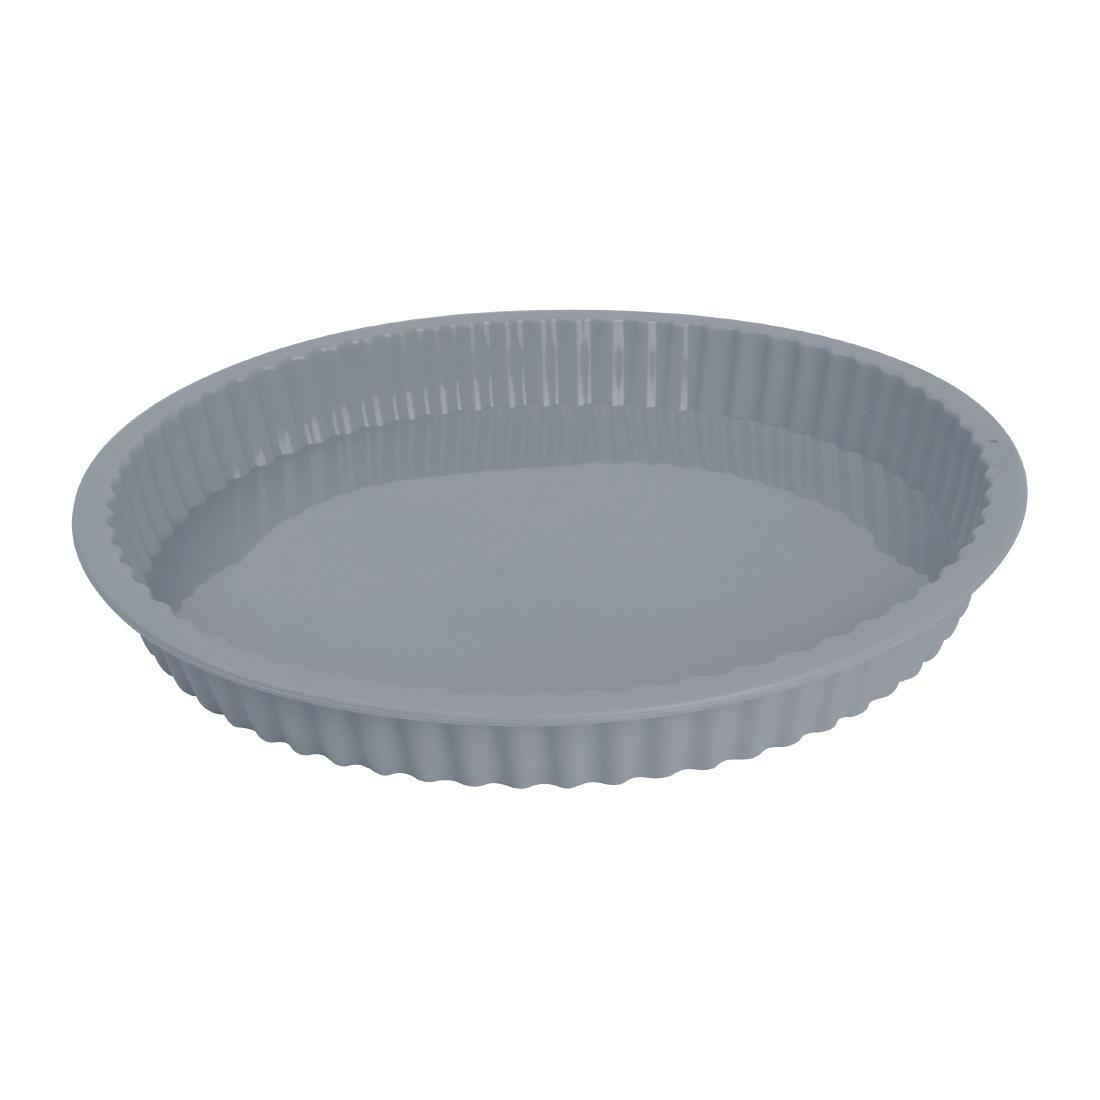 Vogue Flexible Silicone Round Bake Pan 250mm - Each - DA533